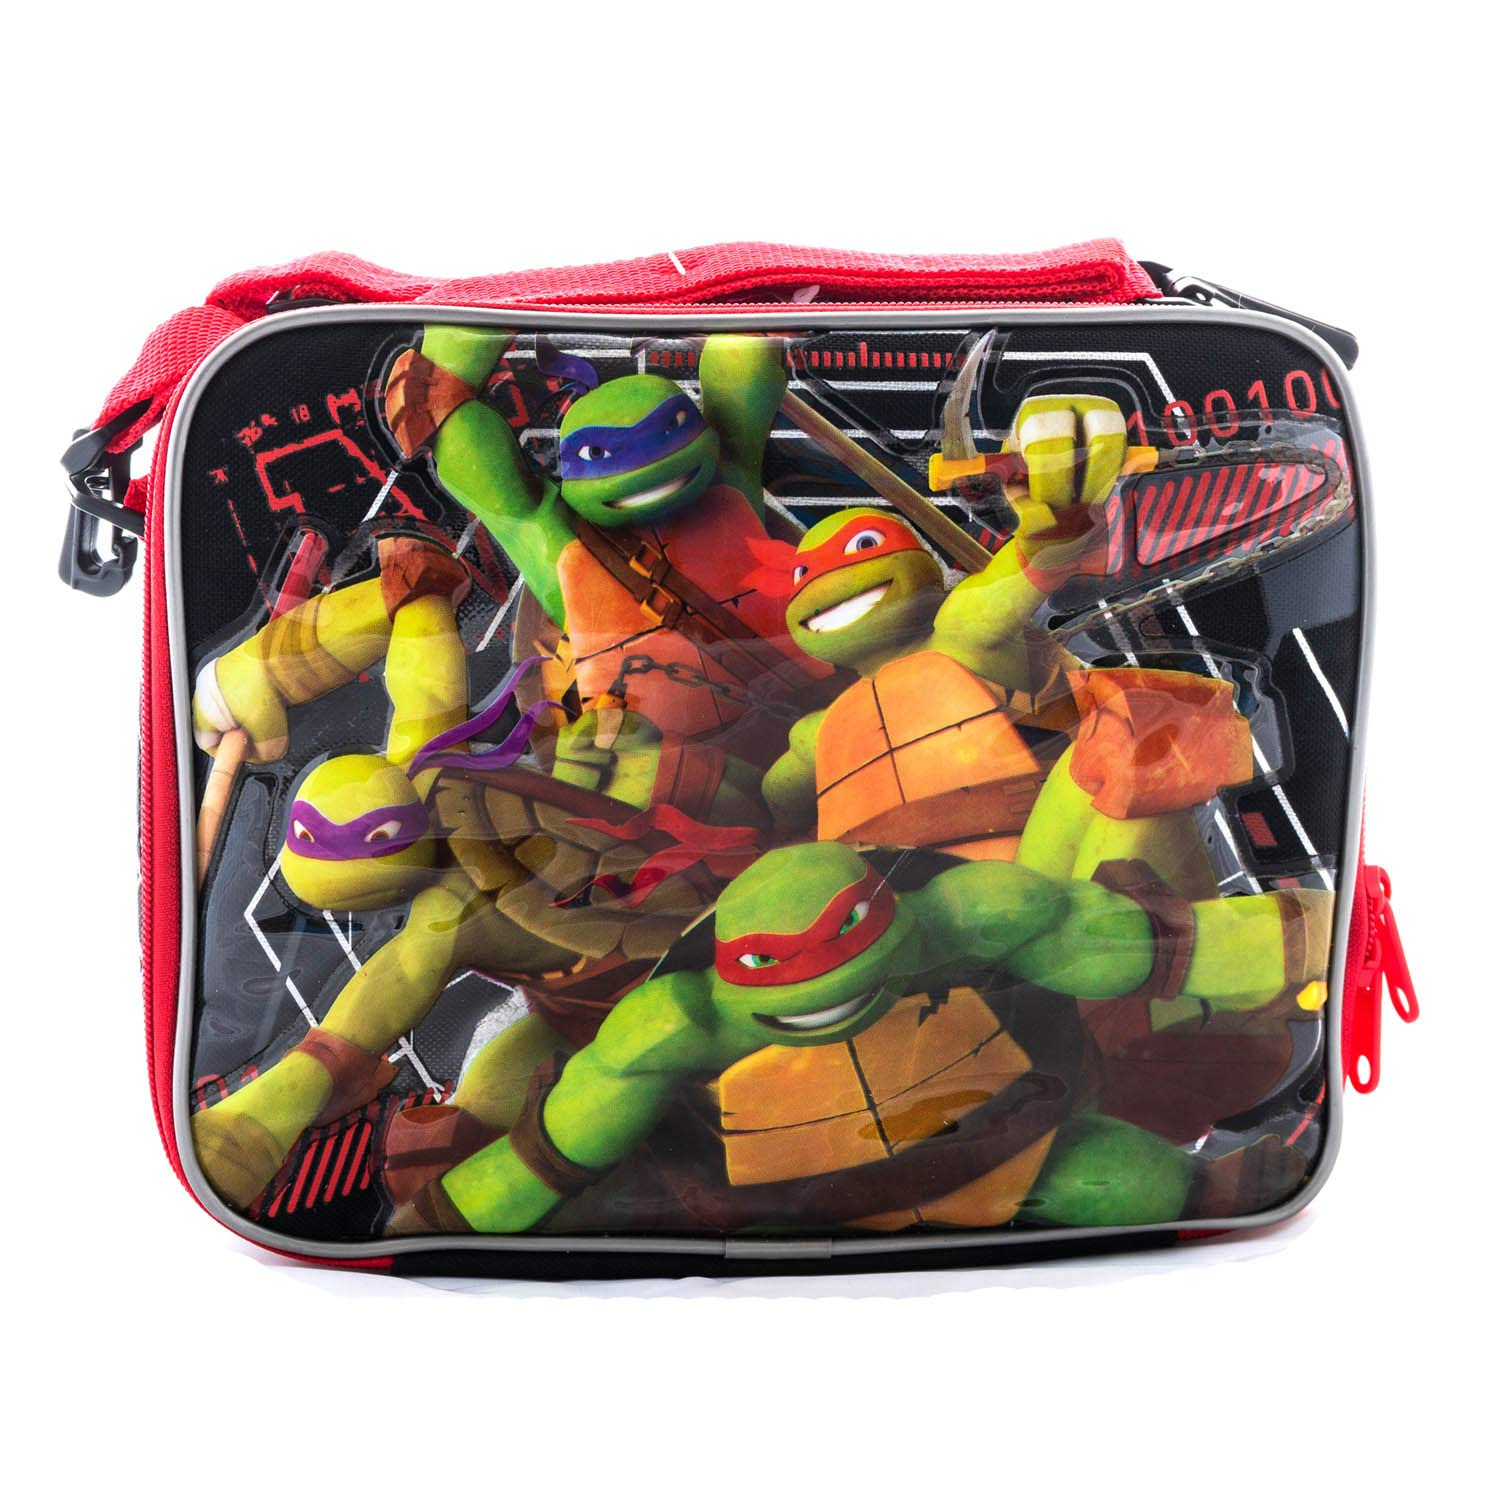 3D TMNT Teenage Mutant Ninja Turtle Backpack or Lunch Box Book Bag Game Travel Everyday bag pouch with Stationary Supplies (Lunch Box)